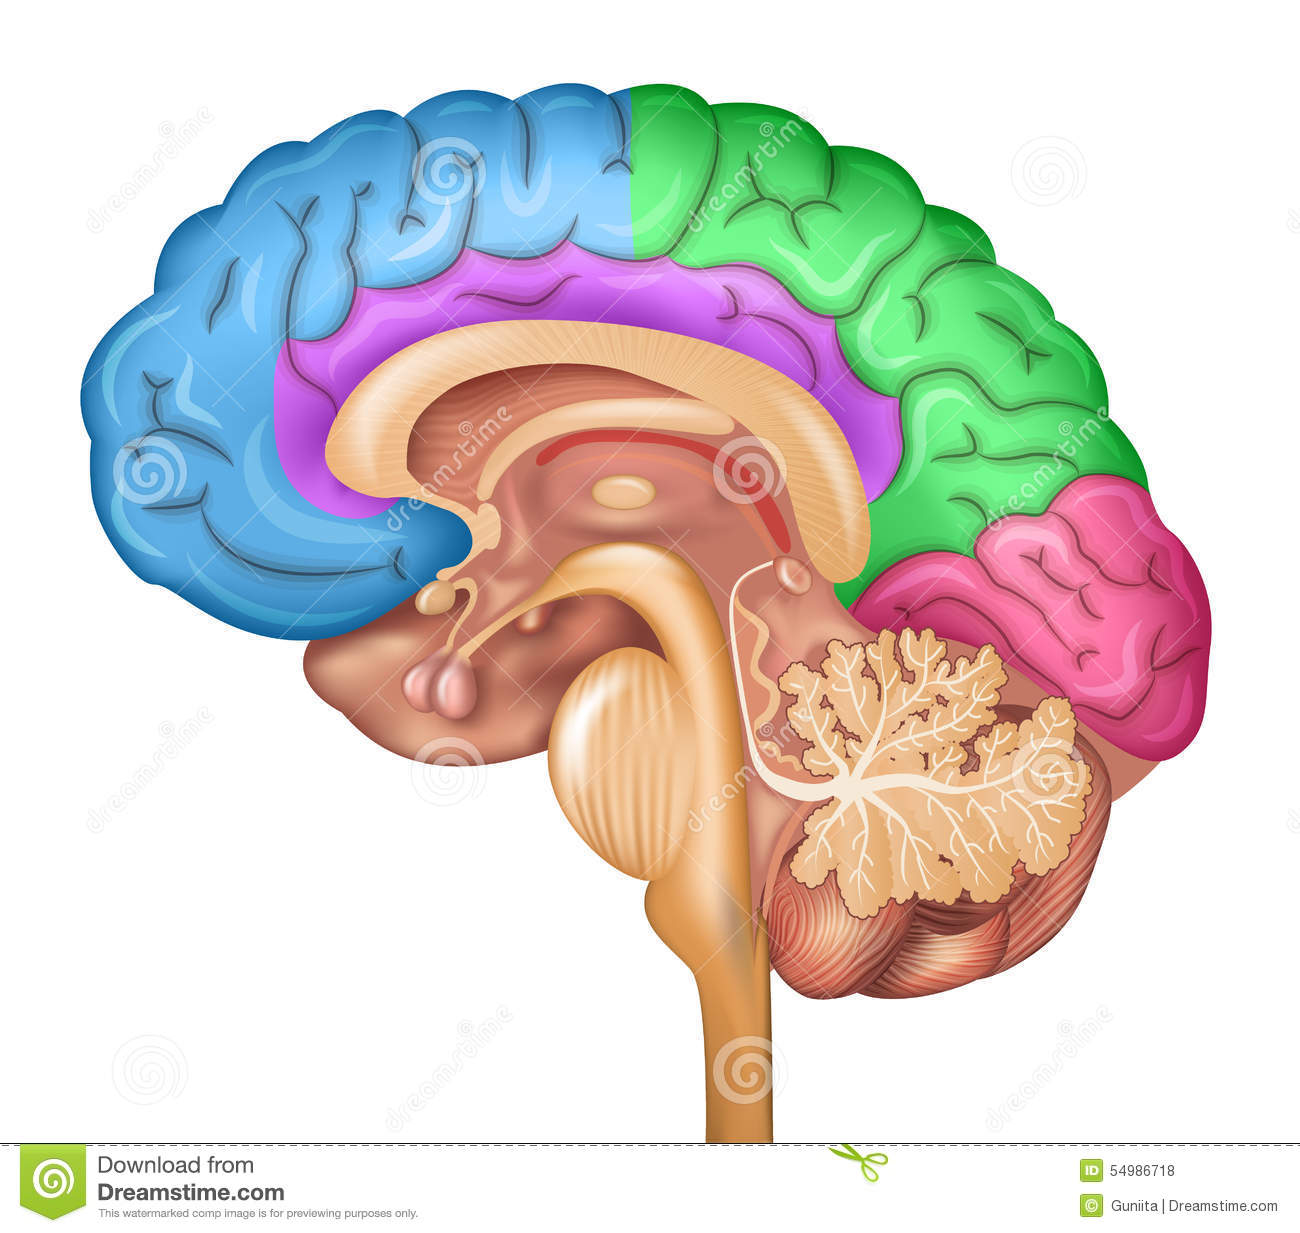 Human brain lobes stock vector. Illustration of diagnosis - 54986718